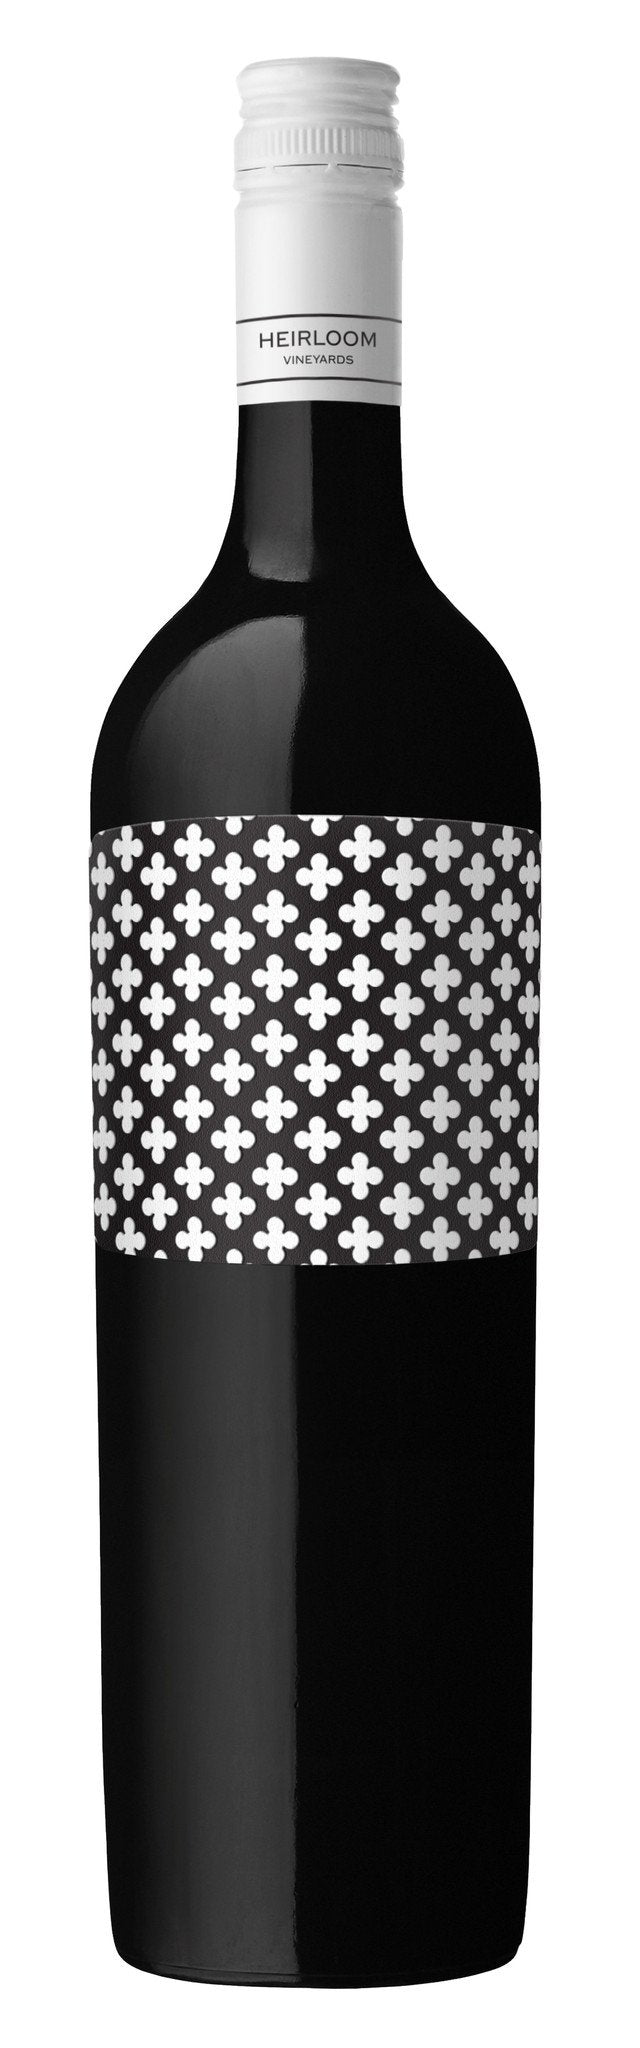 A'Lambra Eden Valley Shiraz 2015